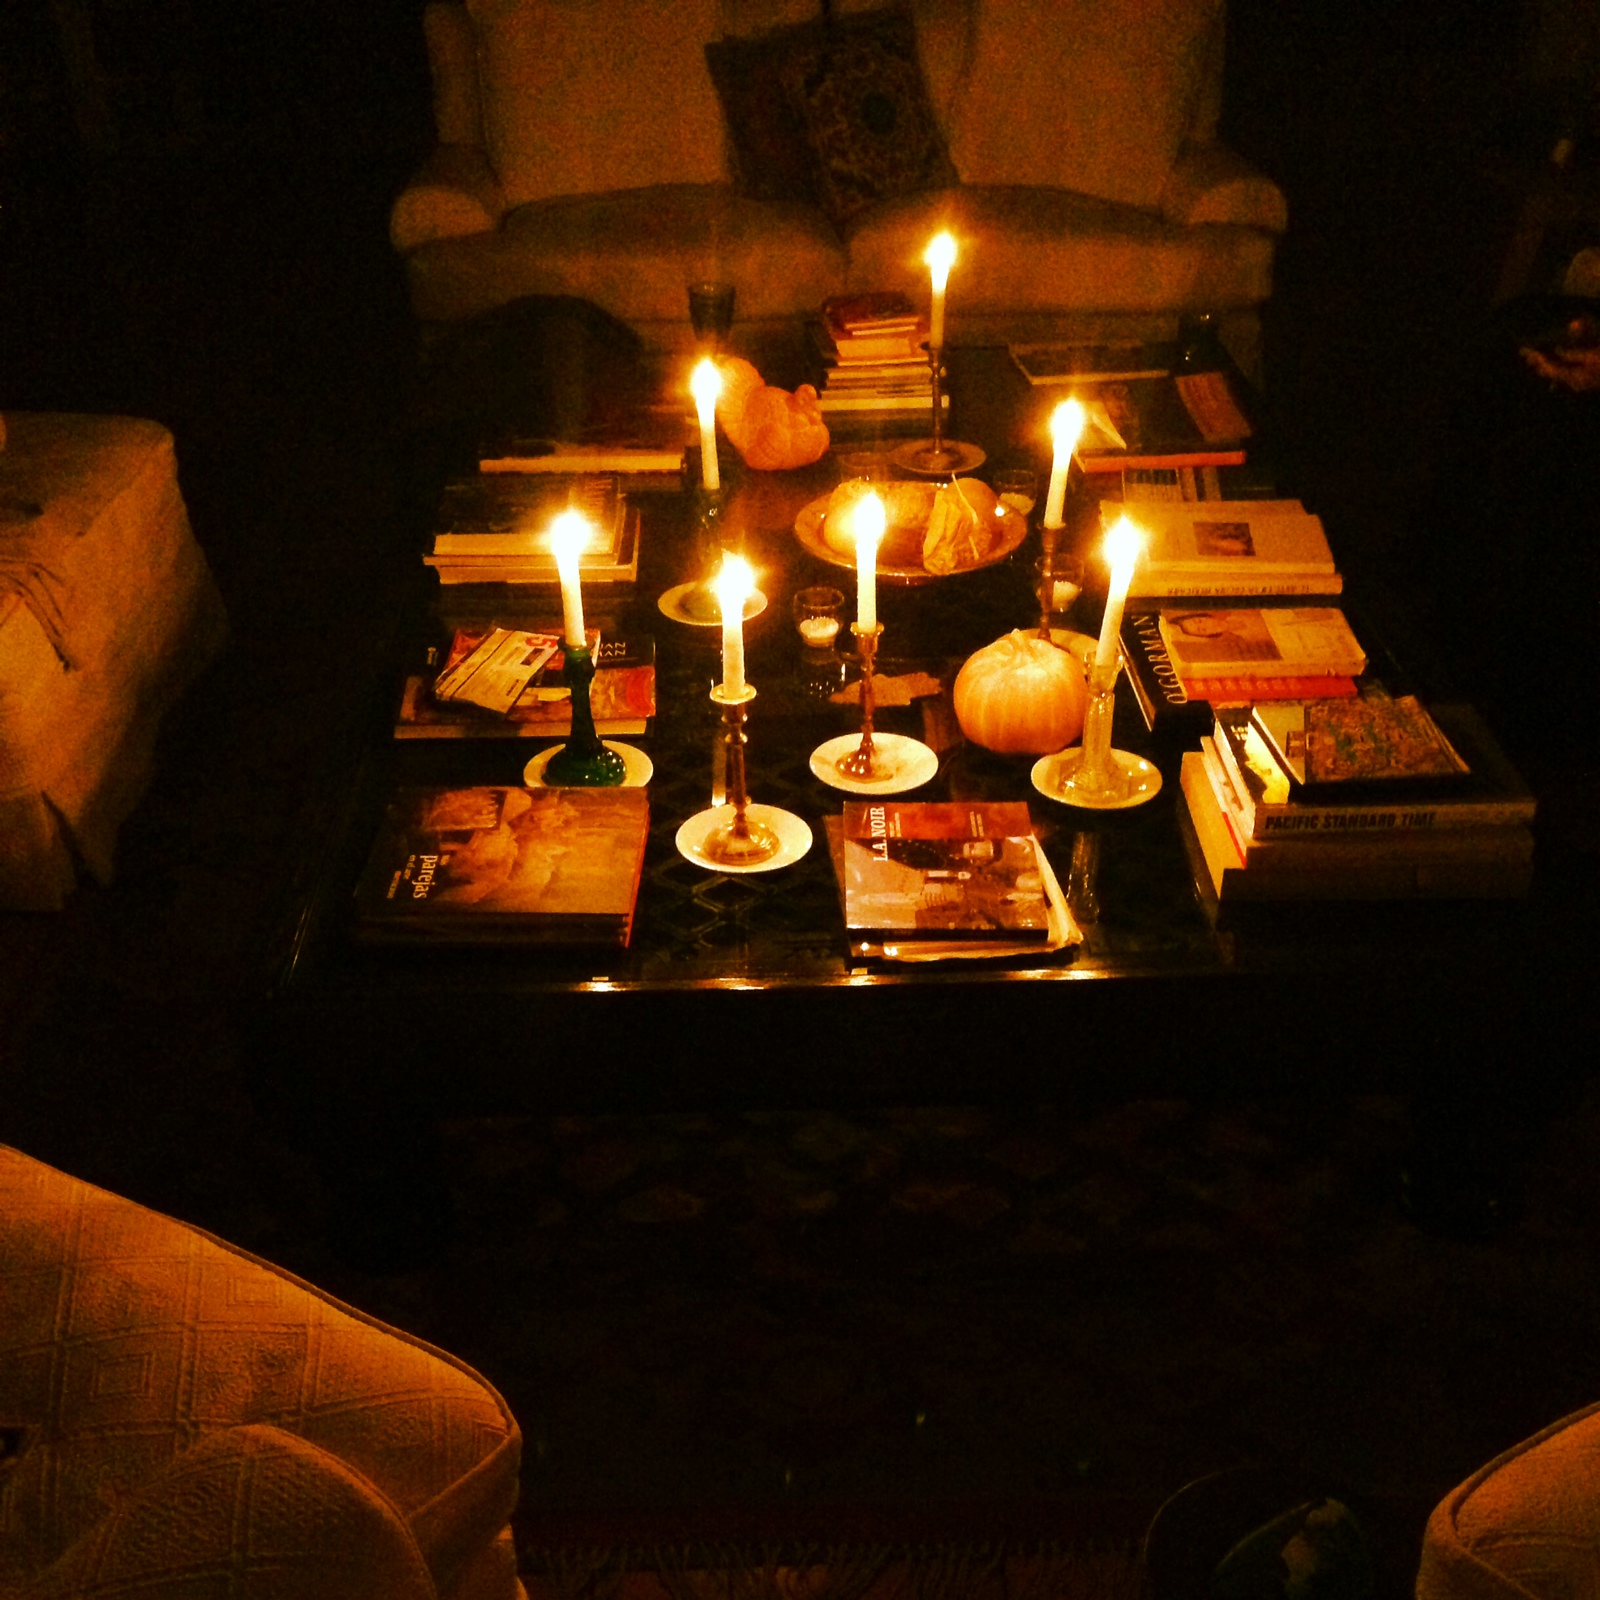 Traditions change and are added over the years. A blackout one Thanksgiving forced us to huddle together in the living room with night caps and candlelight. It's something I hope to continue, even if the lights are working just fine!